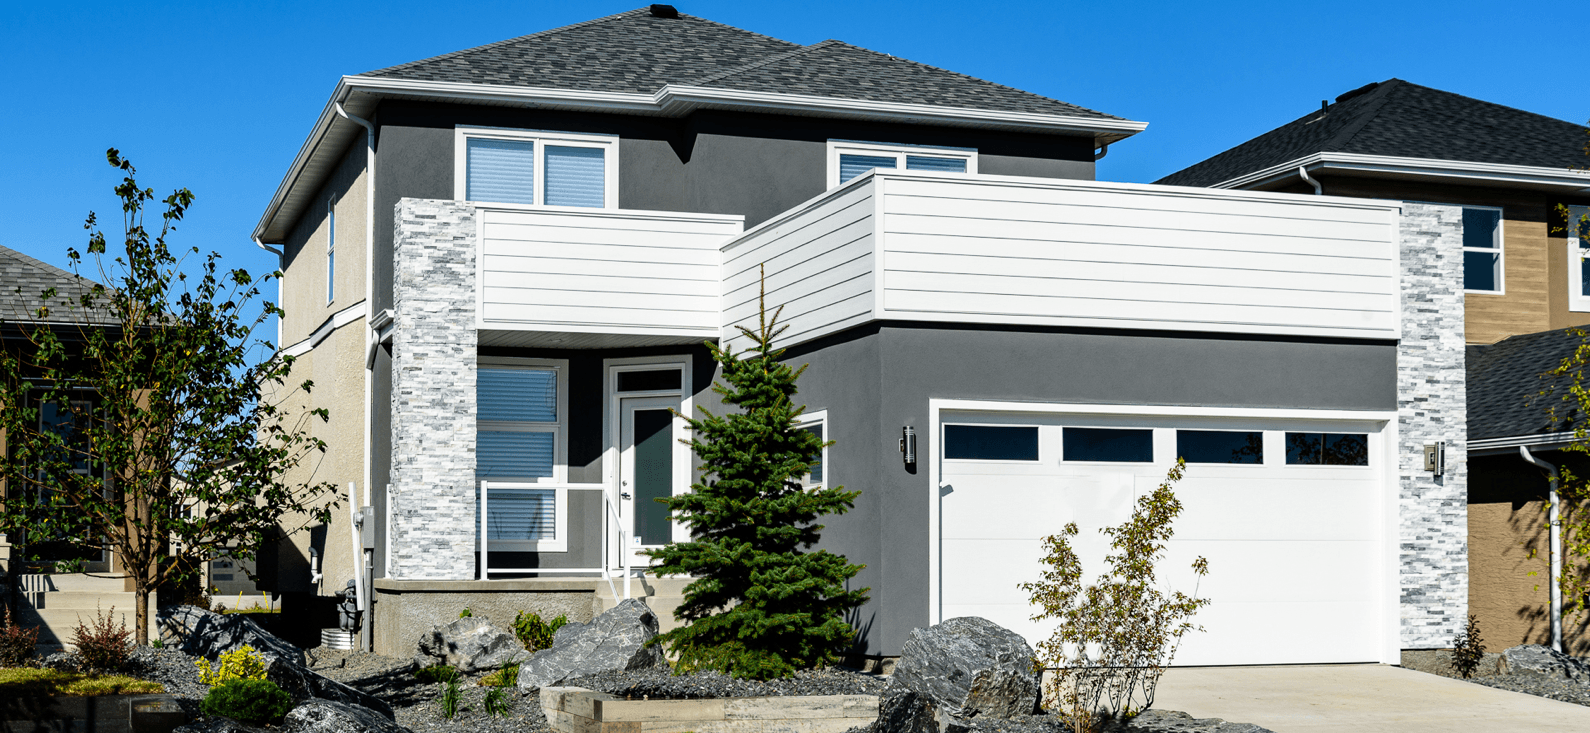 6 Tips to Choosing the Right Winnipeg Home Builder Featured Image